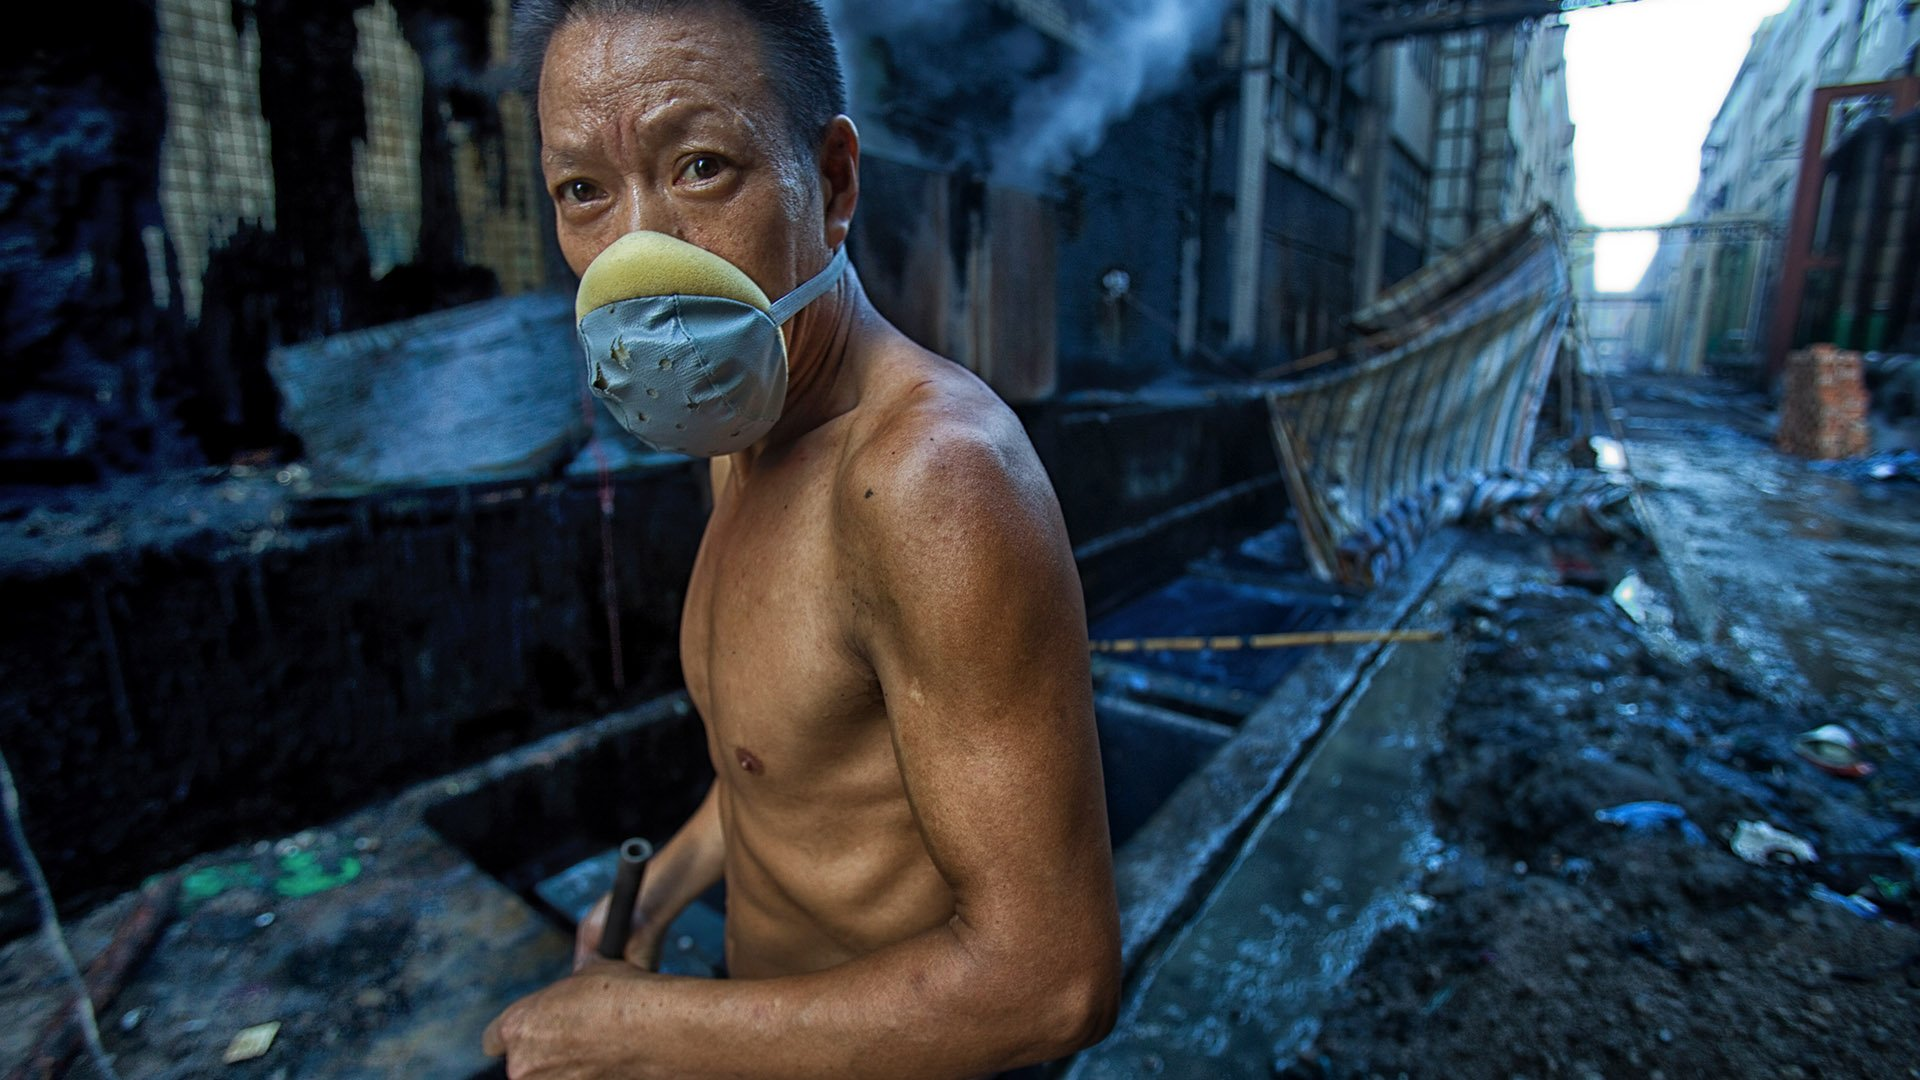 https://spatulamedia.ca/wp-content/uploads/2019/05/china-worker.jpg